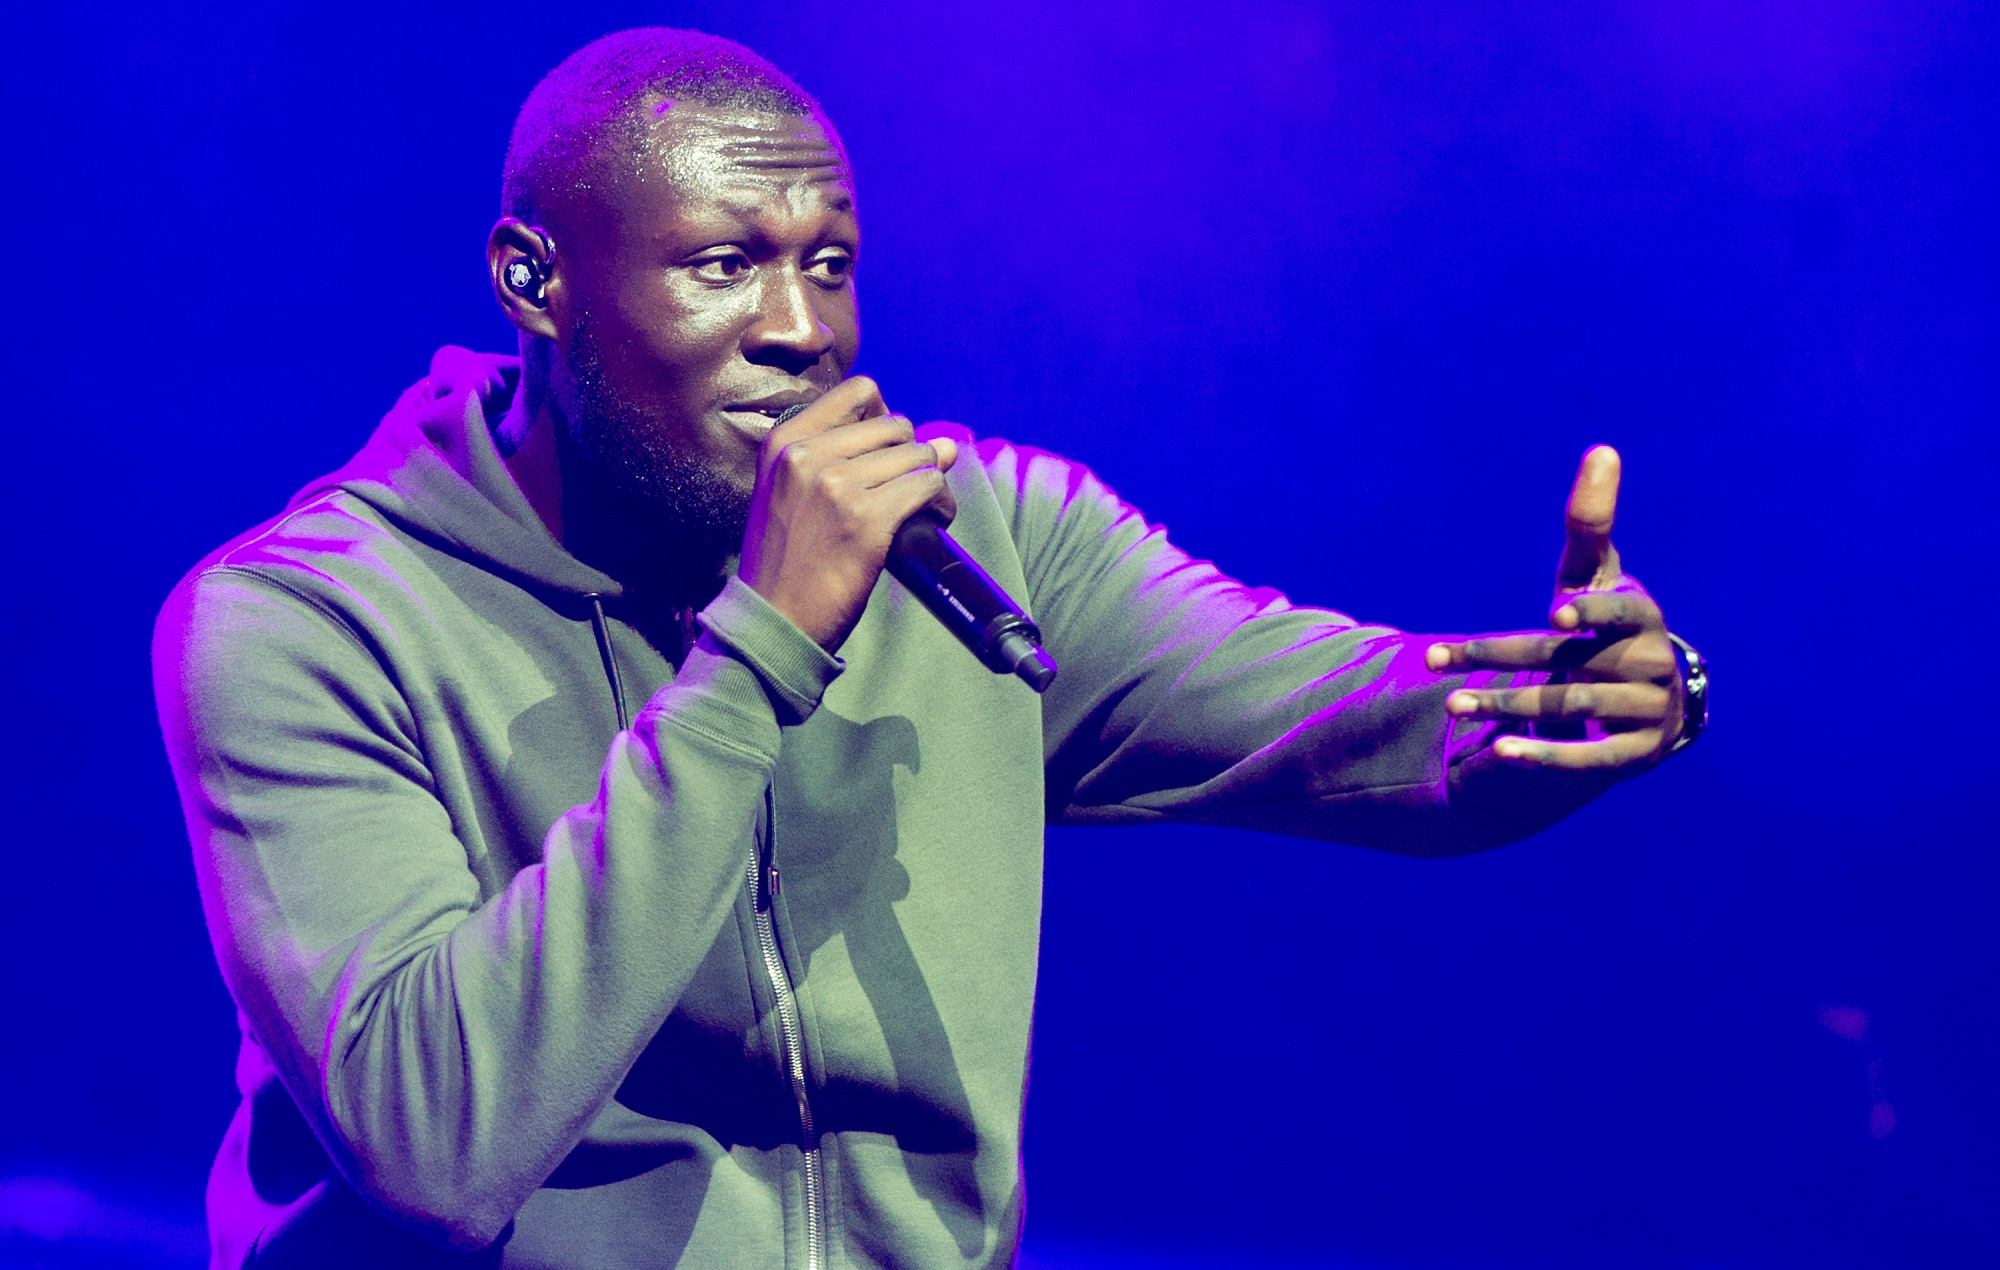 Stormzy Performs At O2 Academy Brixton